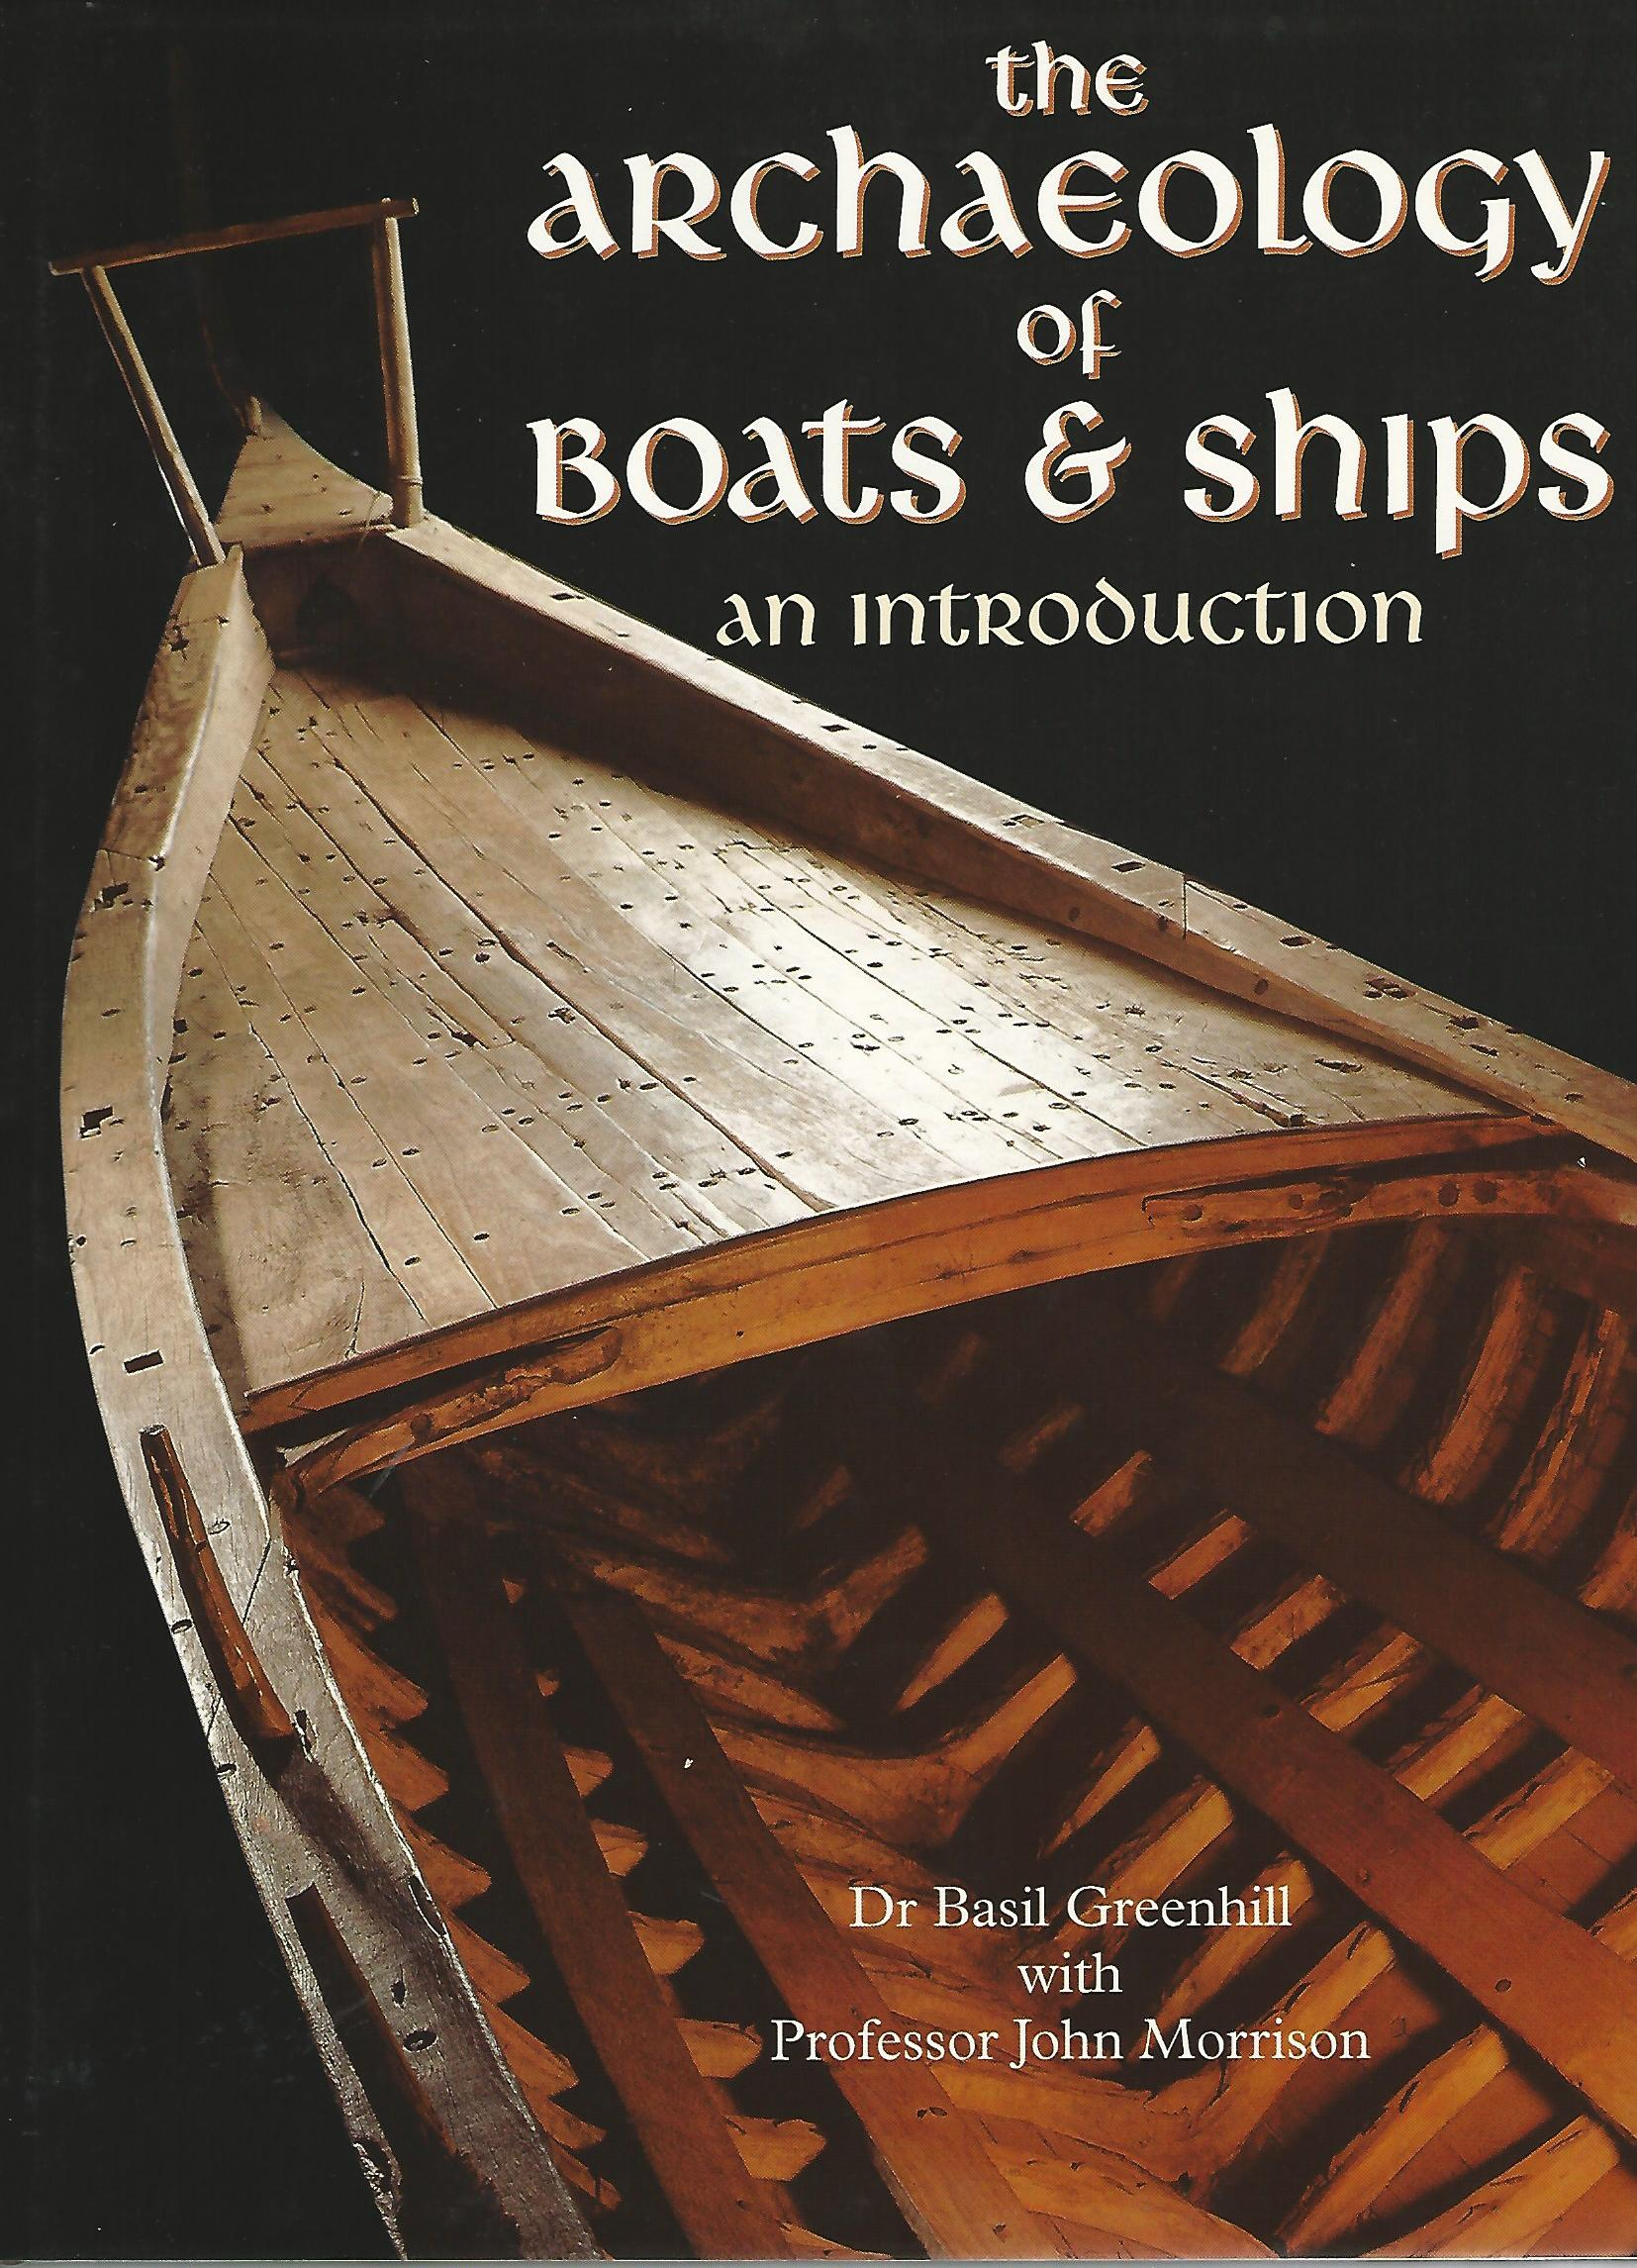 Image for Archaeology of Boats and Ships: An Introduction.